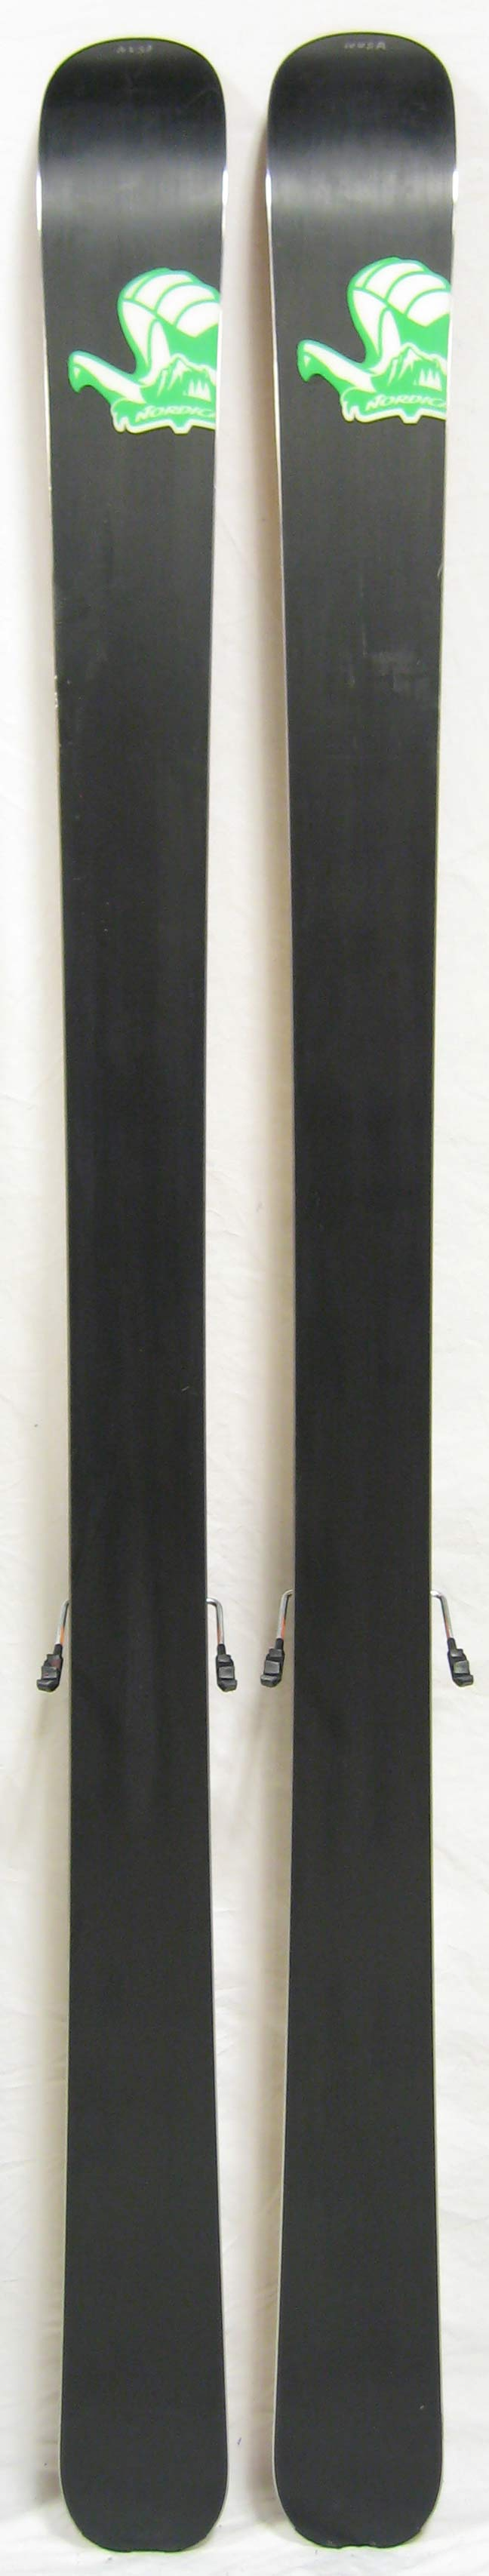 Bases of 2012 Nordica Hell and Back Skis For Sale